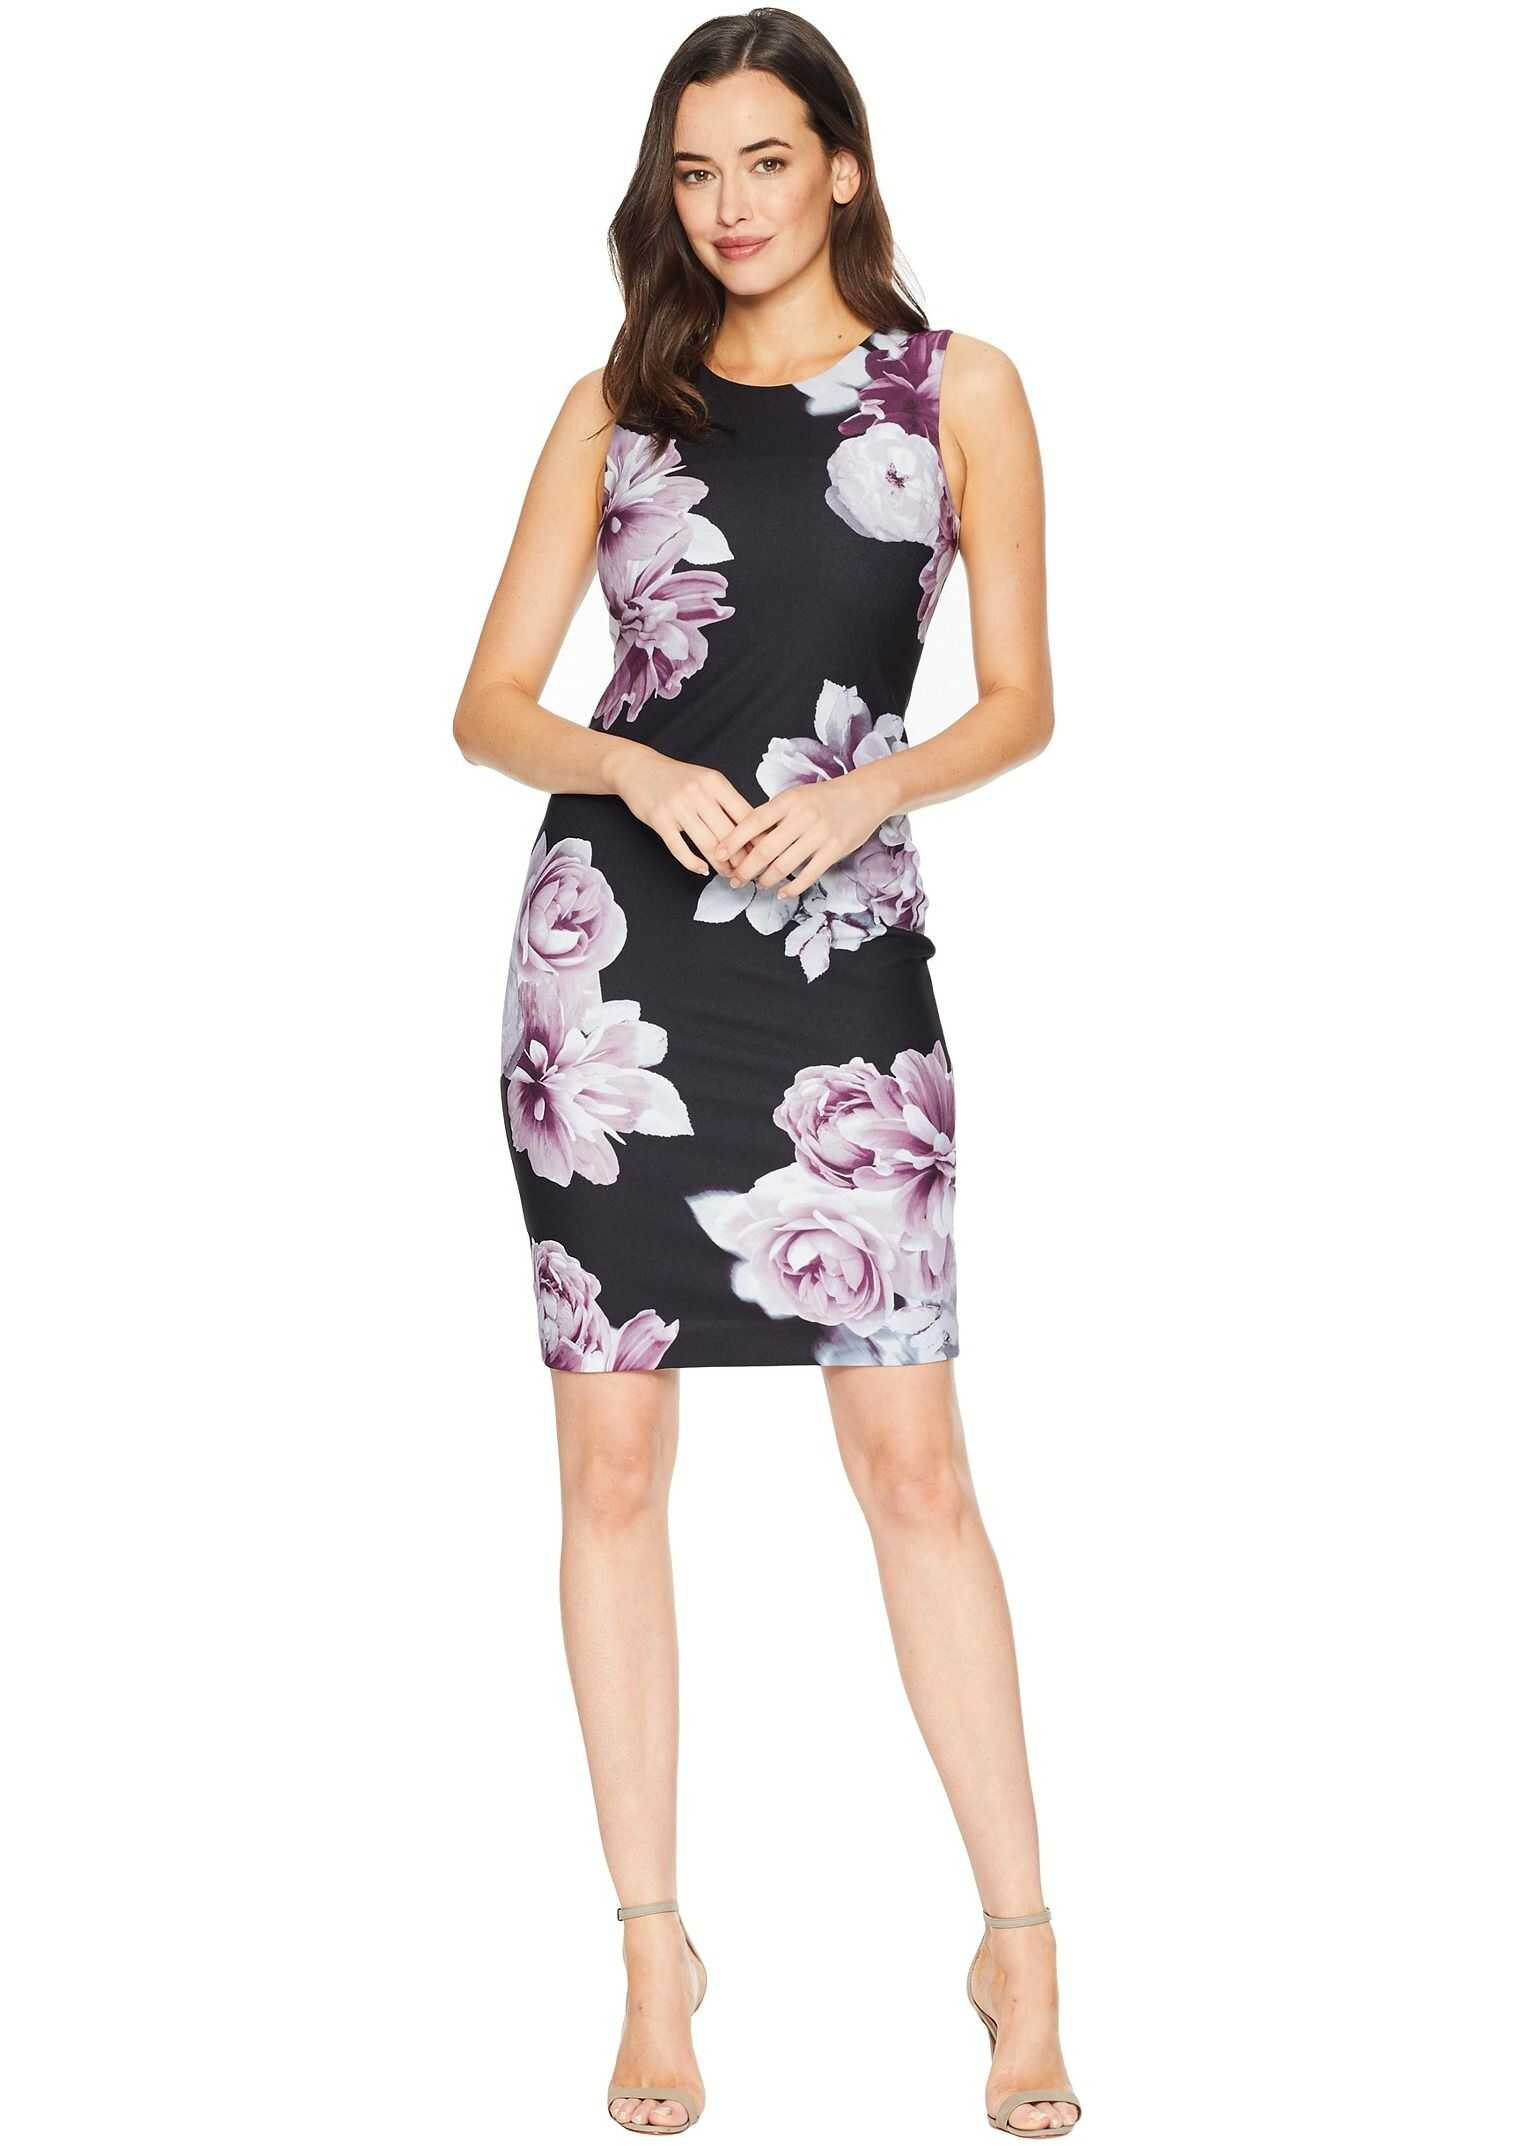 Calvin Klein Printed Crepe Sheath Dress Black Multi